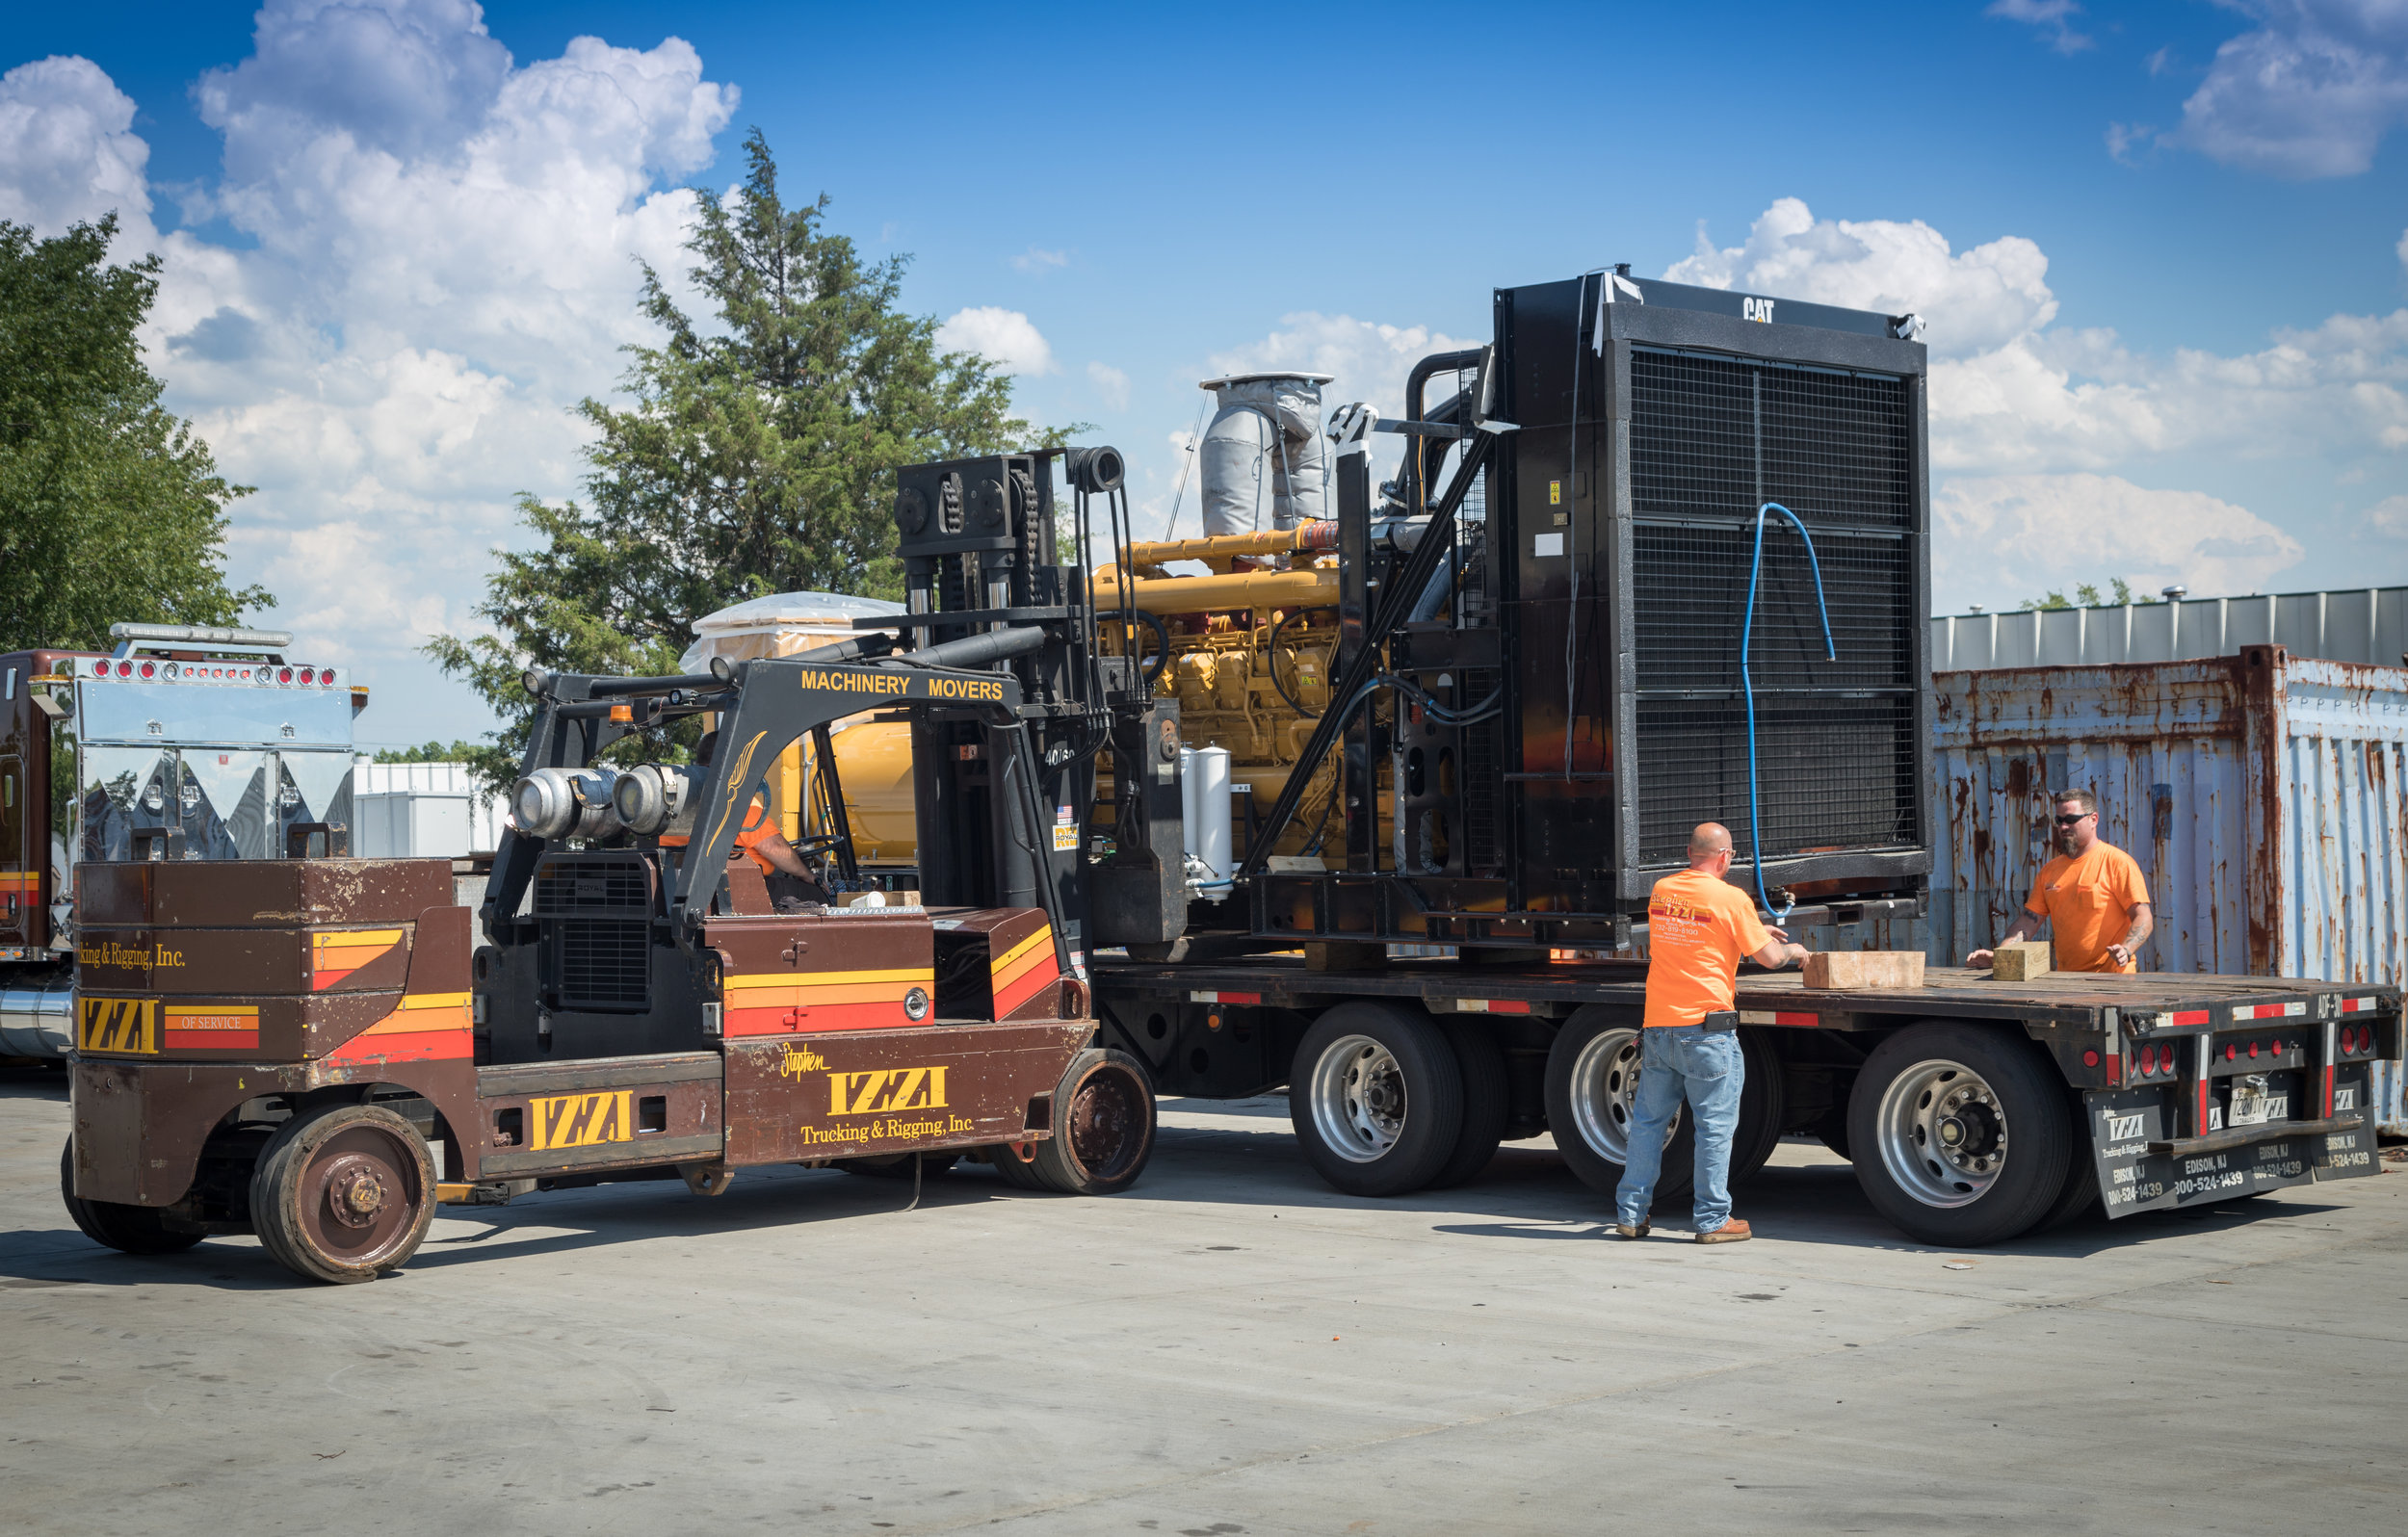 MACHINERY MOVING& RIGGING  - We Specialize in getting your equipment in Place